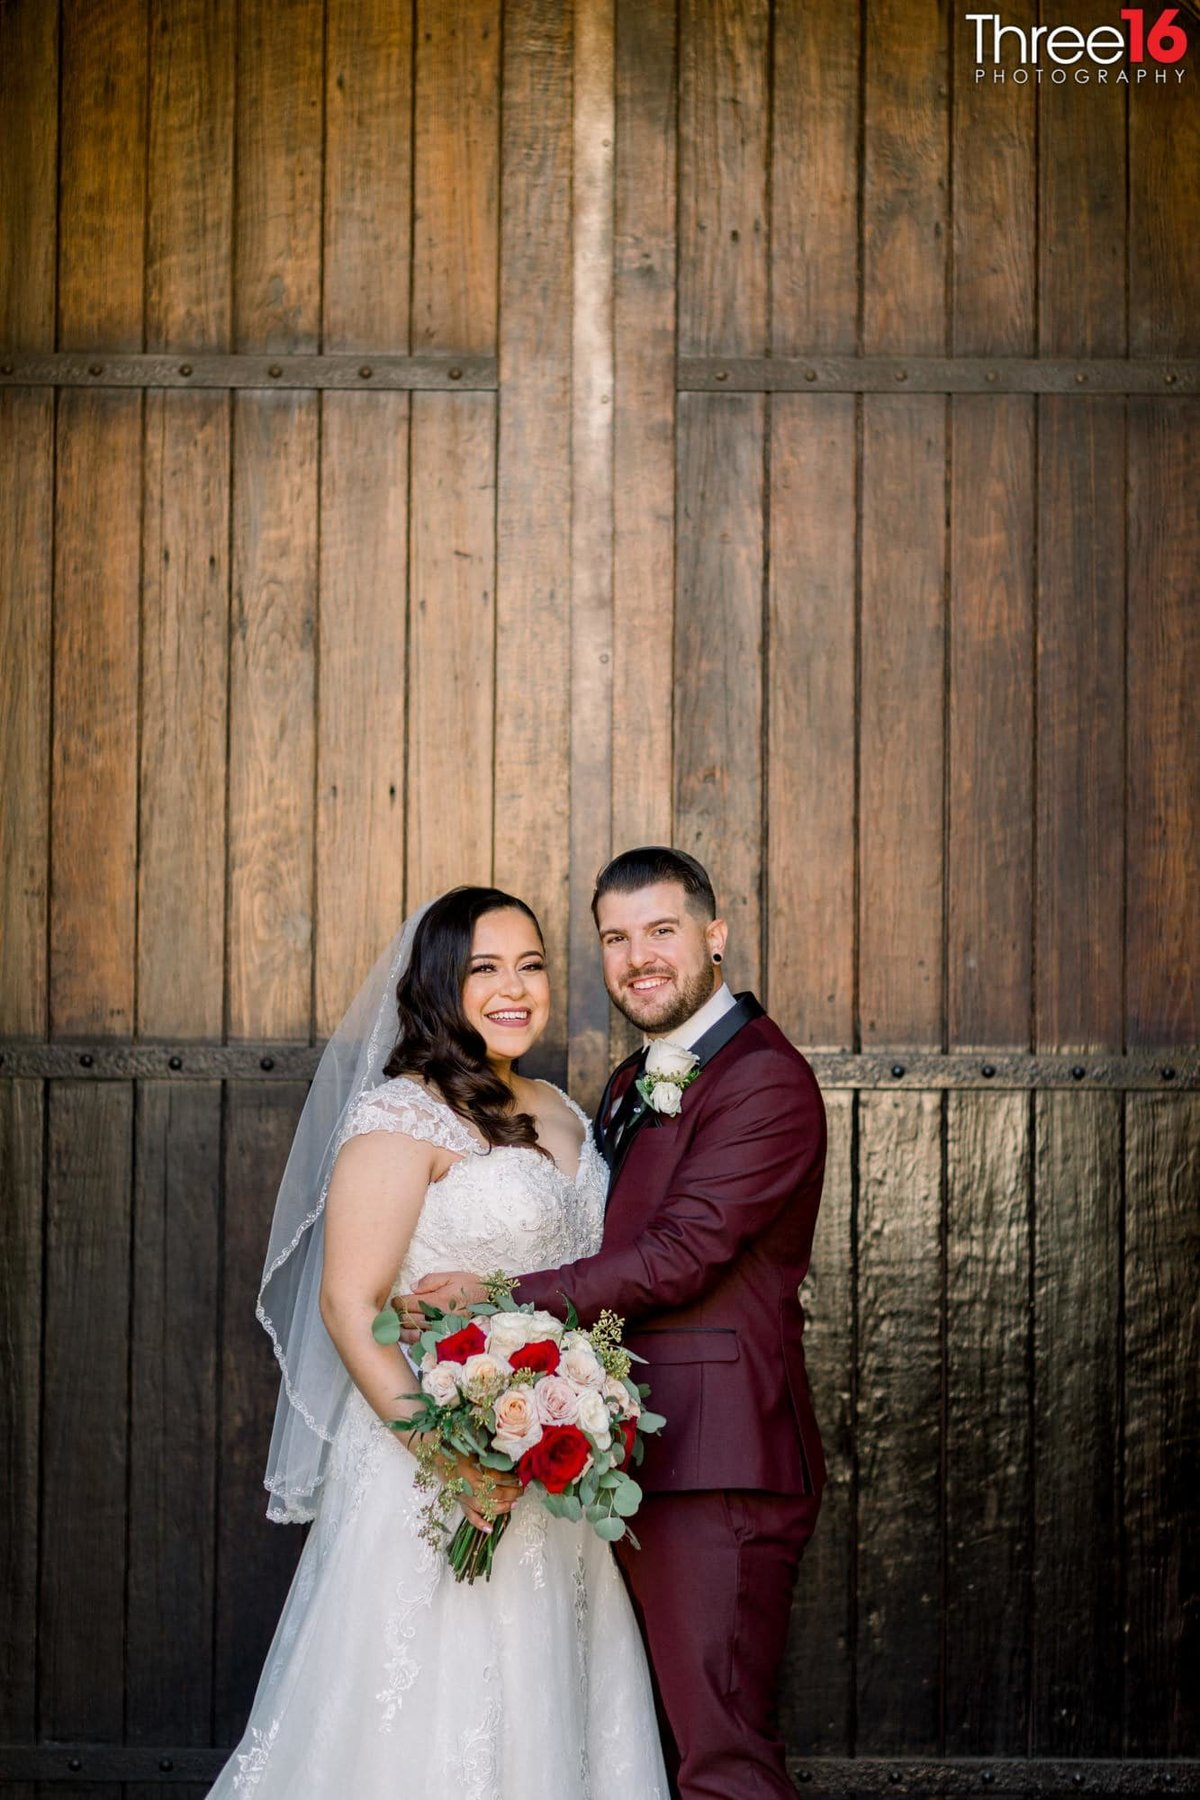 Wedding Casa Bonita Orange County Photographer